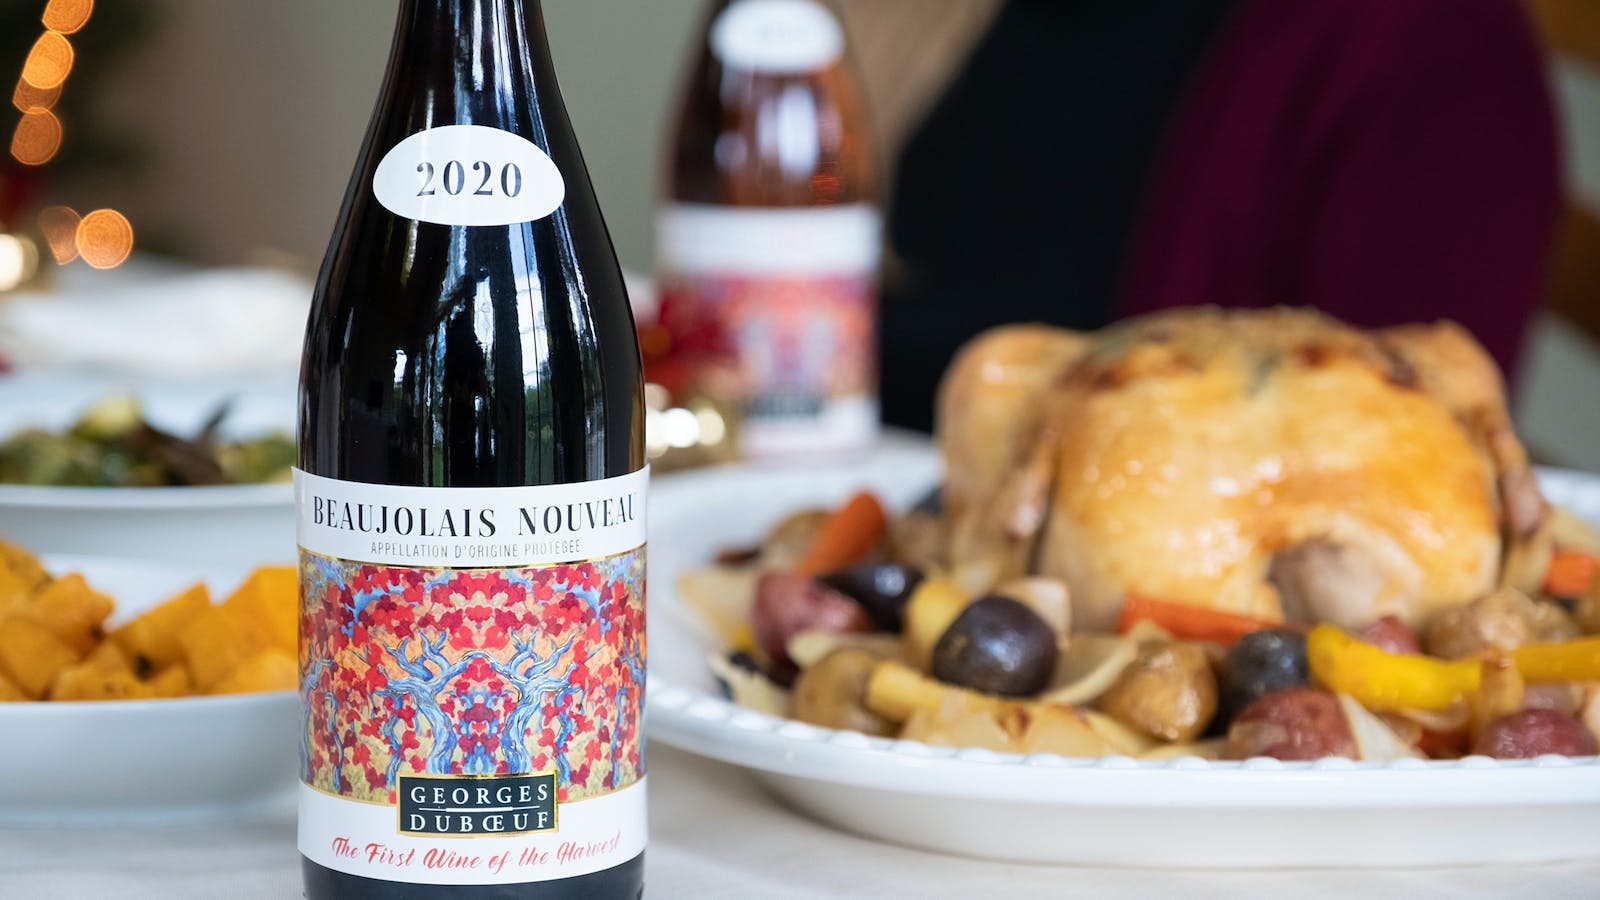 2020 Beaujolais Nouveau: Celebrating Bright Wines in a Dim Year